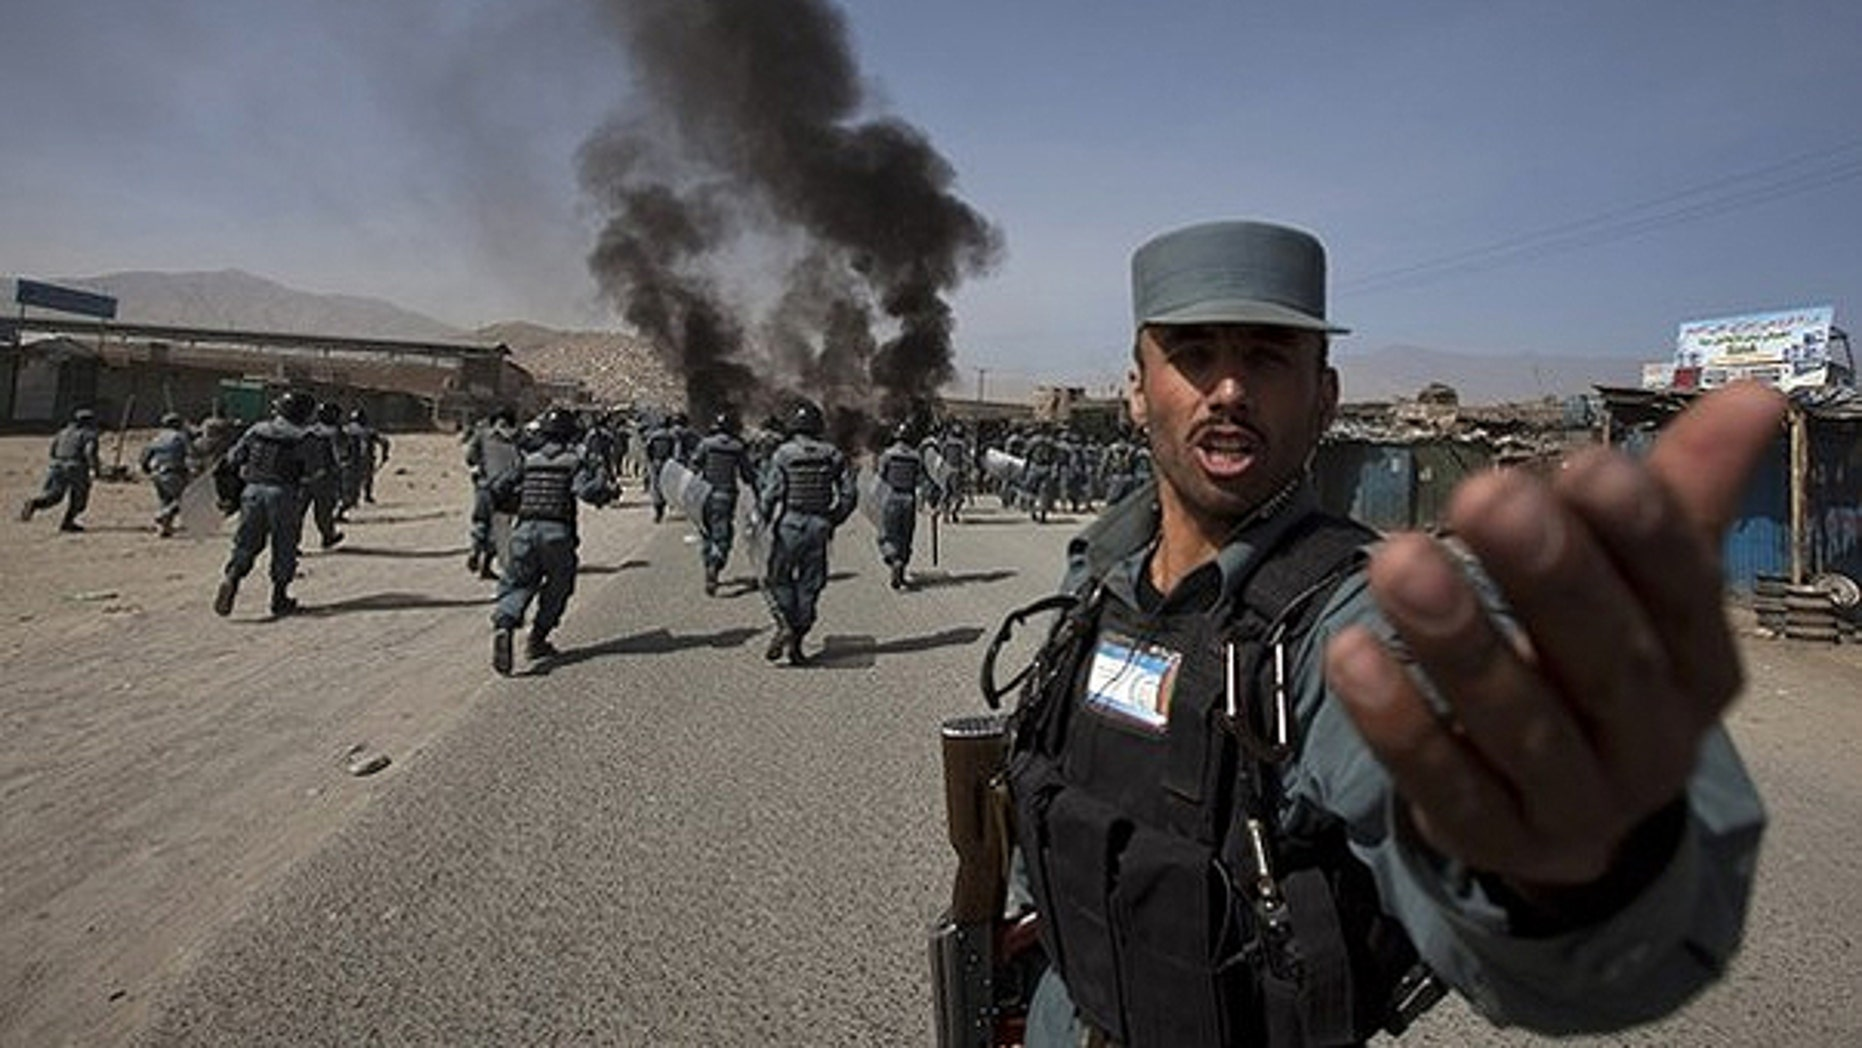 Sept. 15: An Afghan policeman shouts orders as they charge towards protesters in Kabul.